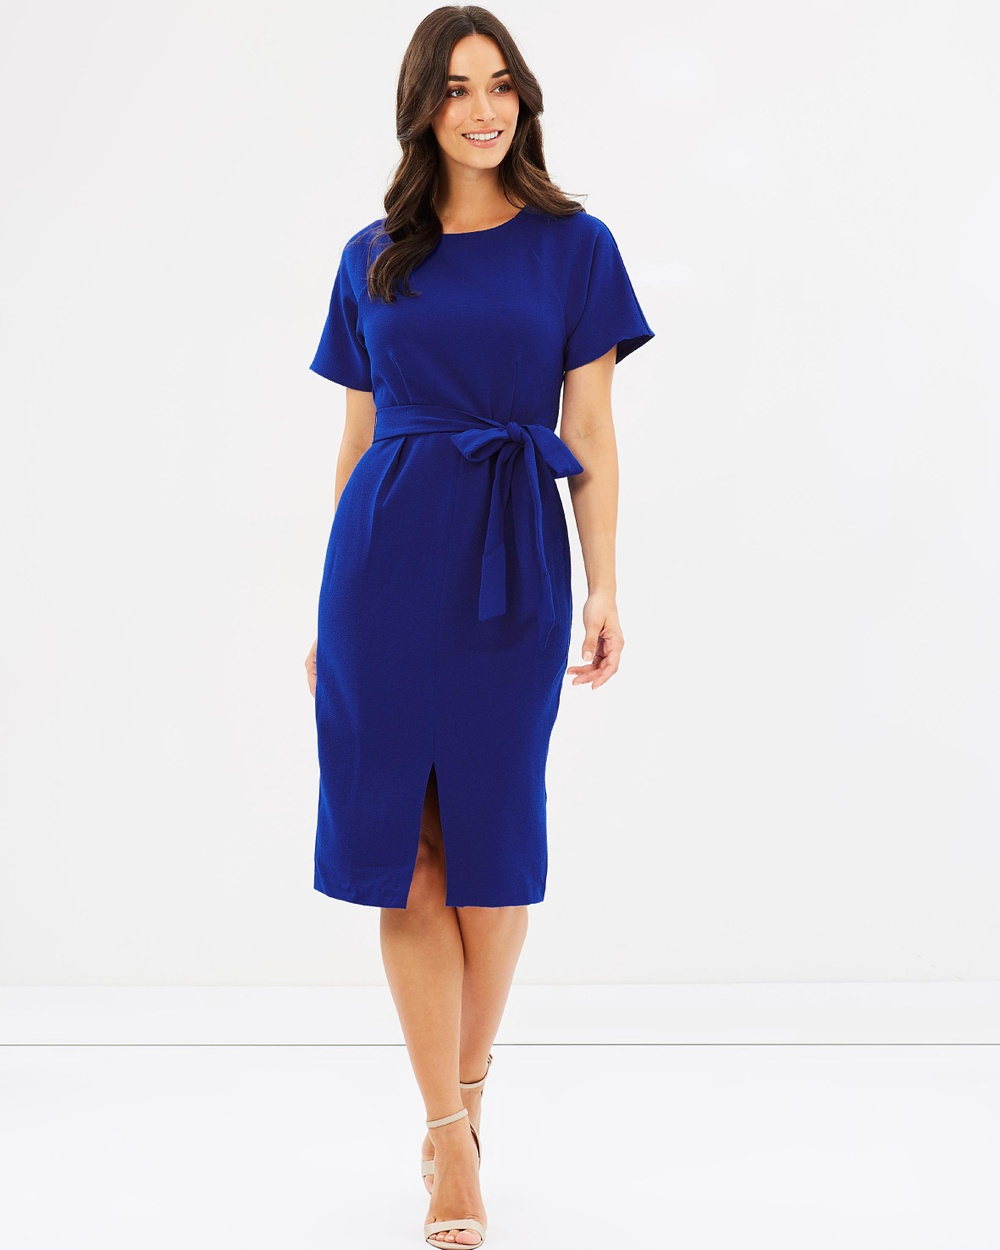 Forcast Ingrid Tie Waist Dress Dresses Cobalt Ingrid Tie Waist Dress